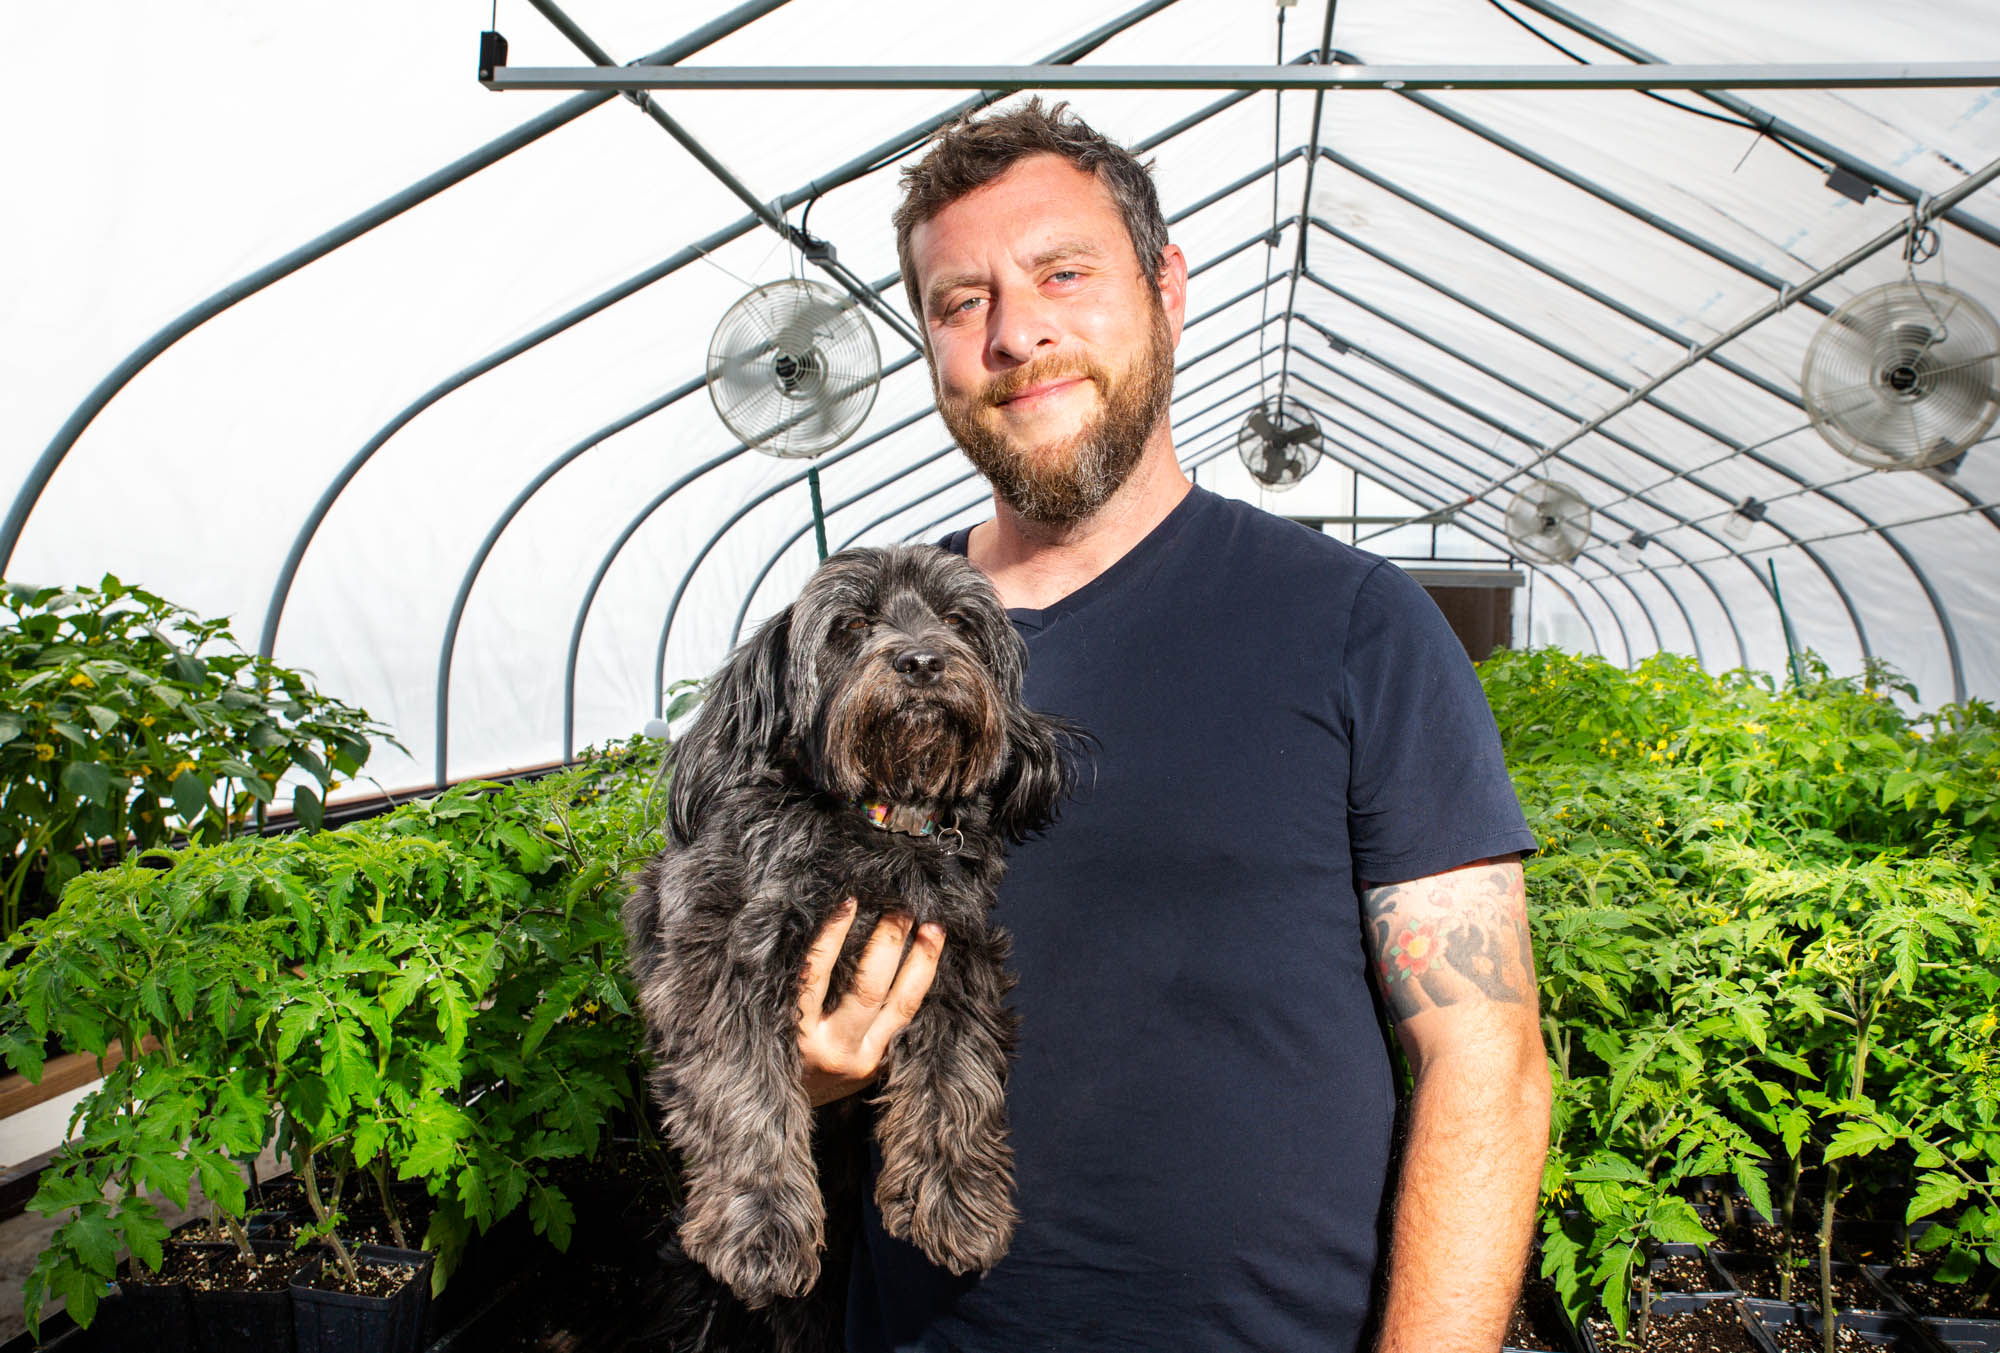 A man holds a dog in a greenhouse